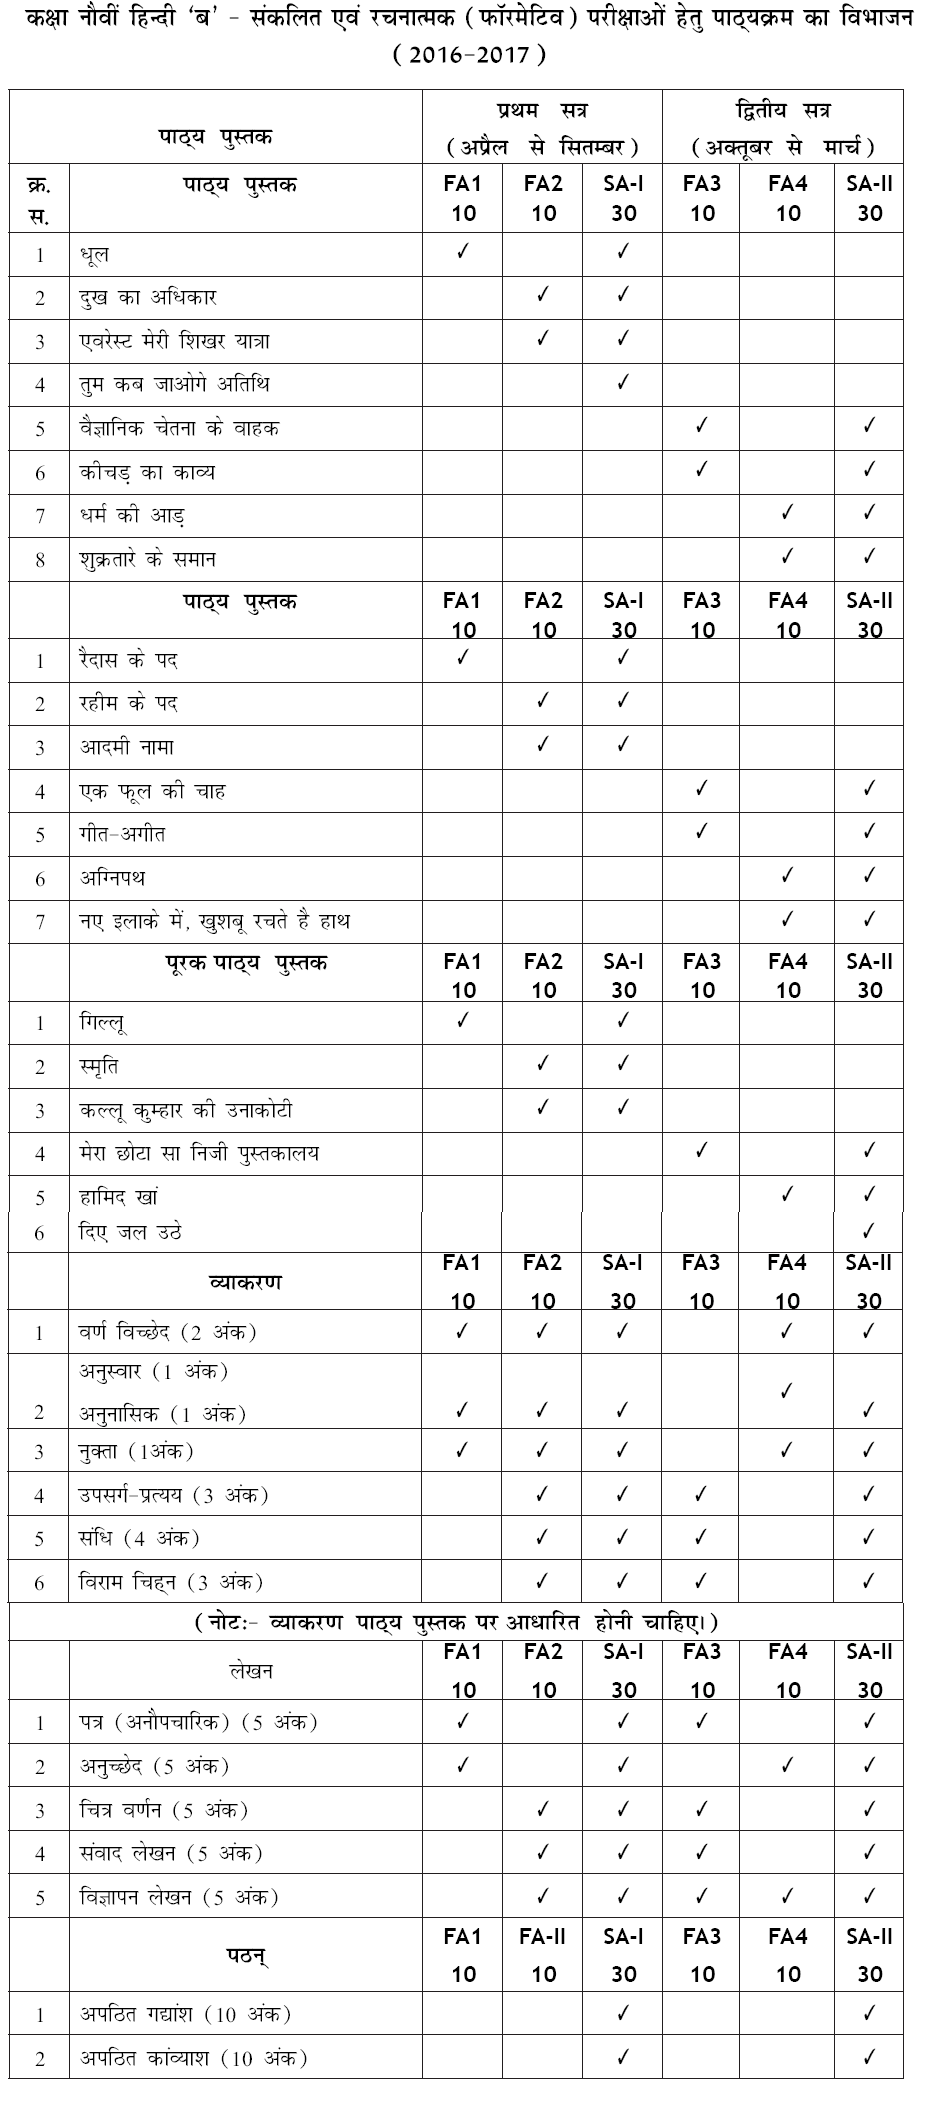 Syllabus of cbse class 9 hindi course a 2016 2017 sa i syllabus for formative and summative assessments of cbse class 9 hindi course a for the academic year 2016 17 malvernweather Choice Image